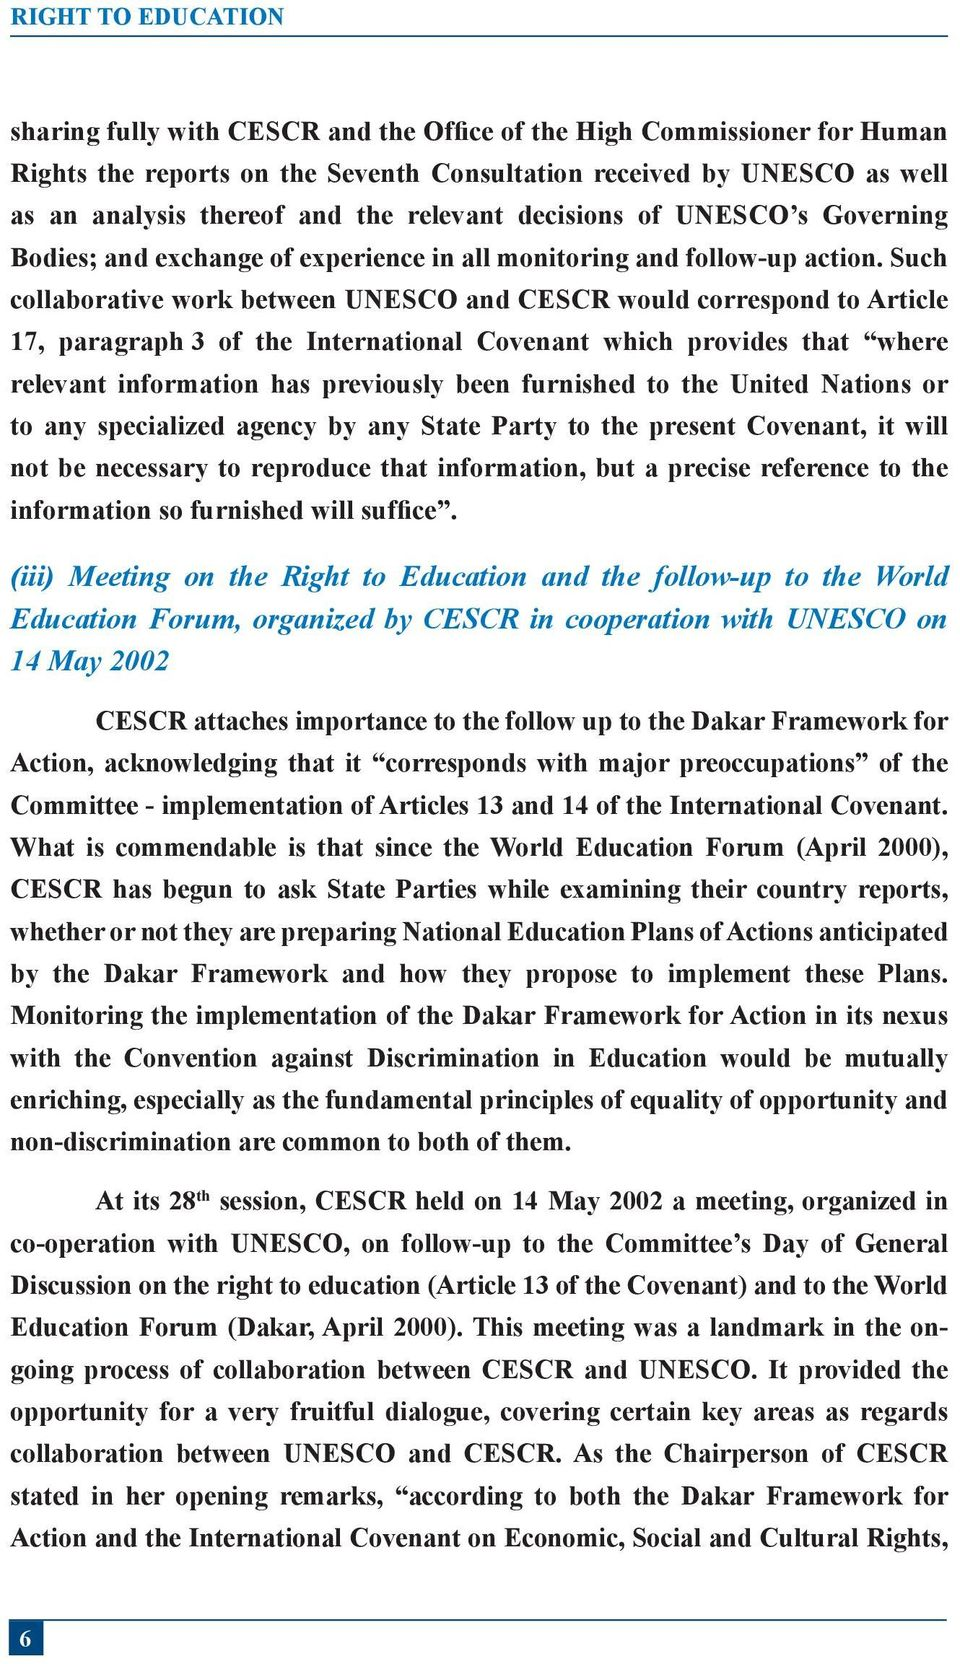 Such collaborative work between UNESCO and CESCR would correspond to Article 17, paragraph 3 of the International Covenant which provides that where relevant information has previously been furnished